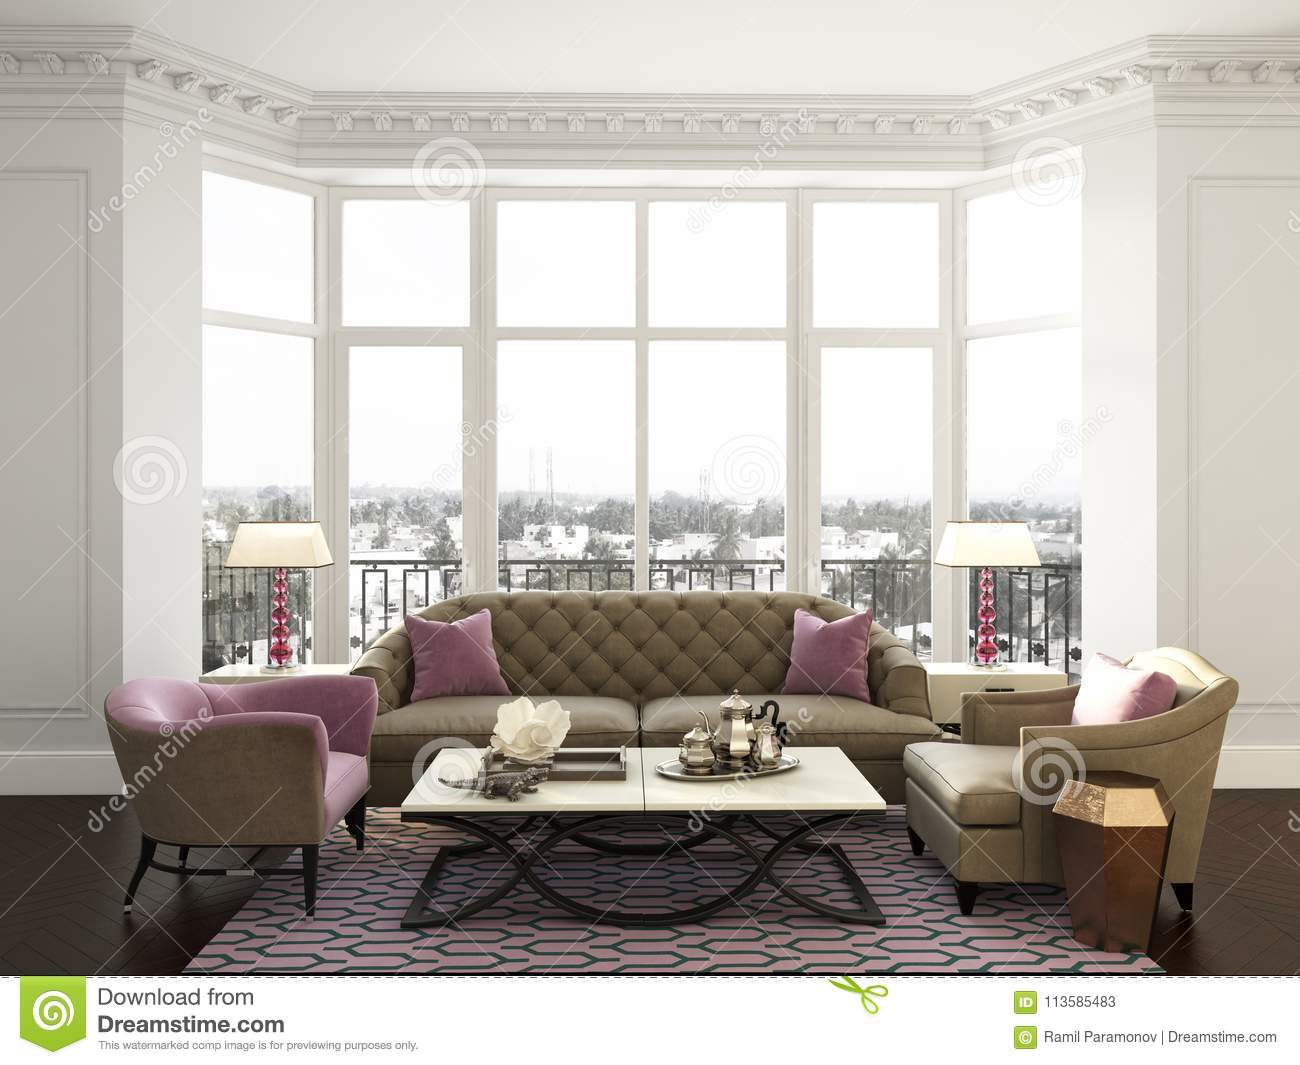 Classic Interior Room With Moulding,ornated Cornice And Big Wind ...